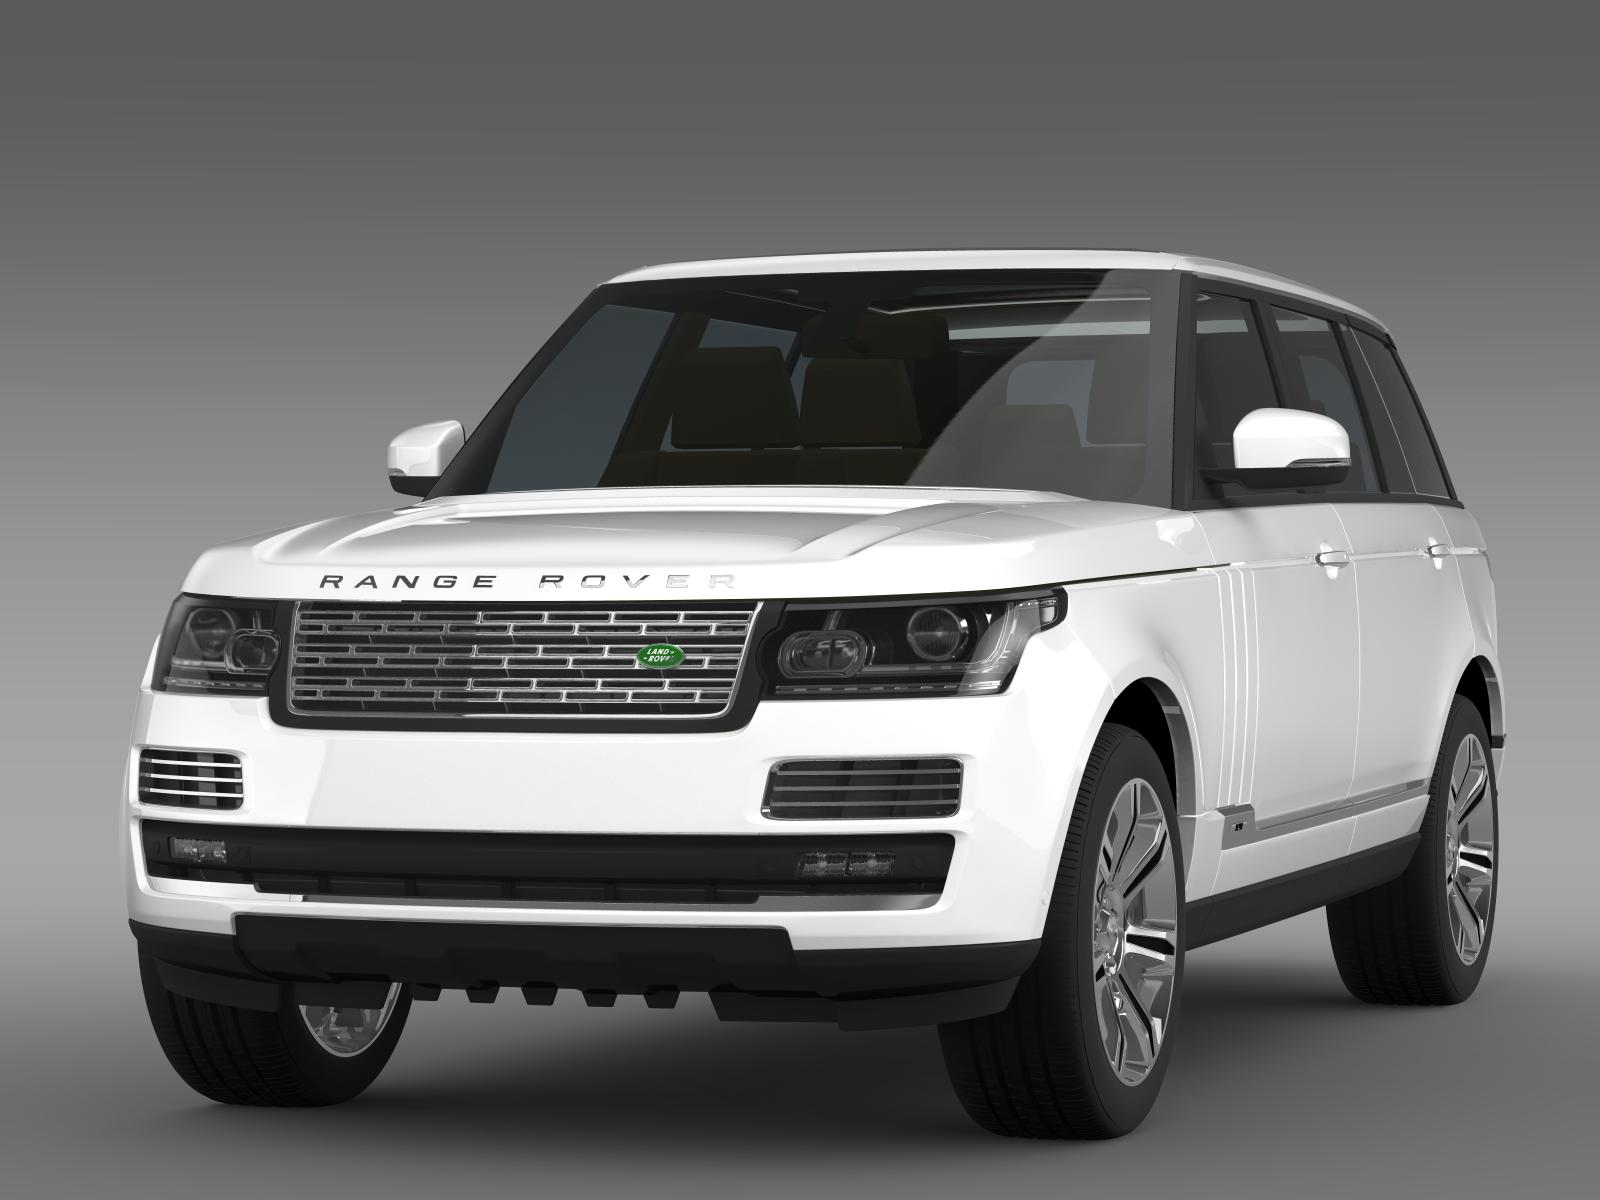 range rover autobiography black lwb l405 3d model flatpyramid. Black Bedroom Furniture Sets. Home Design Ideas